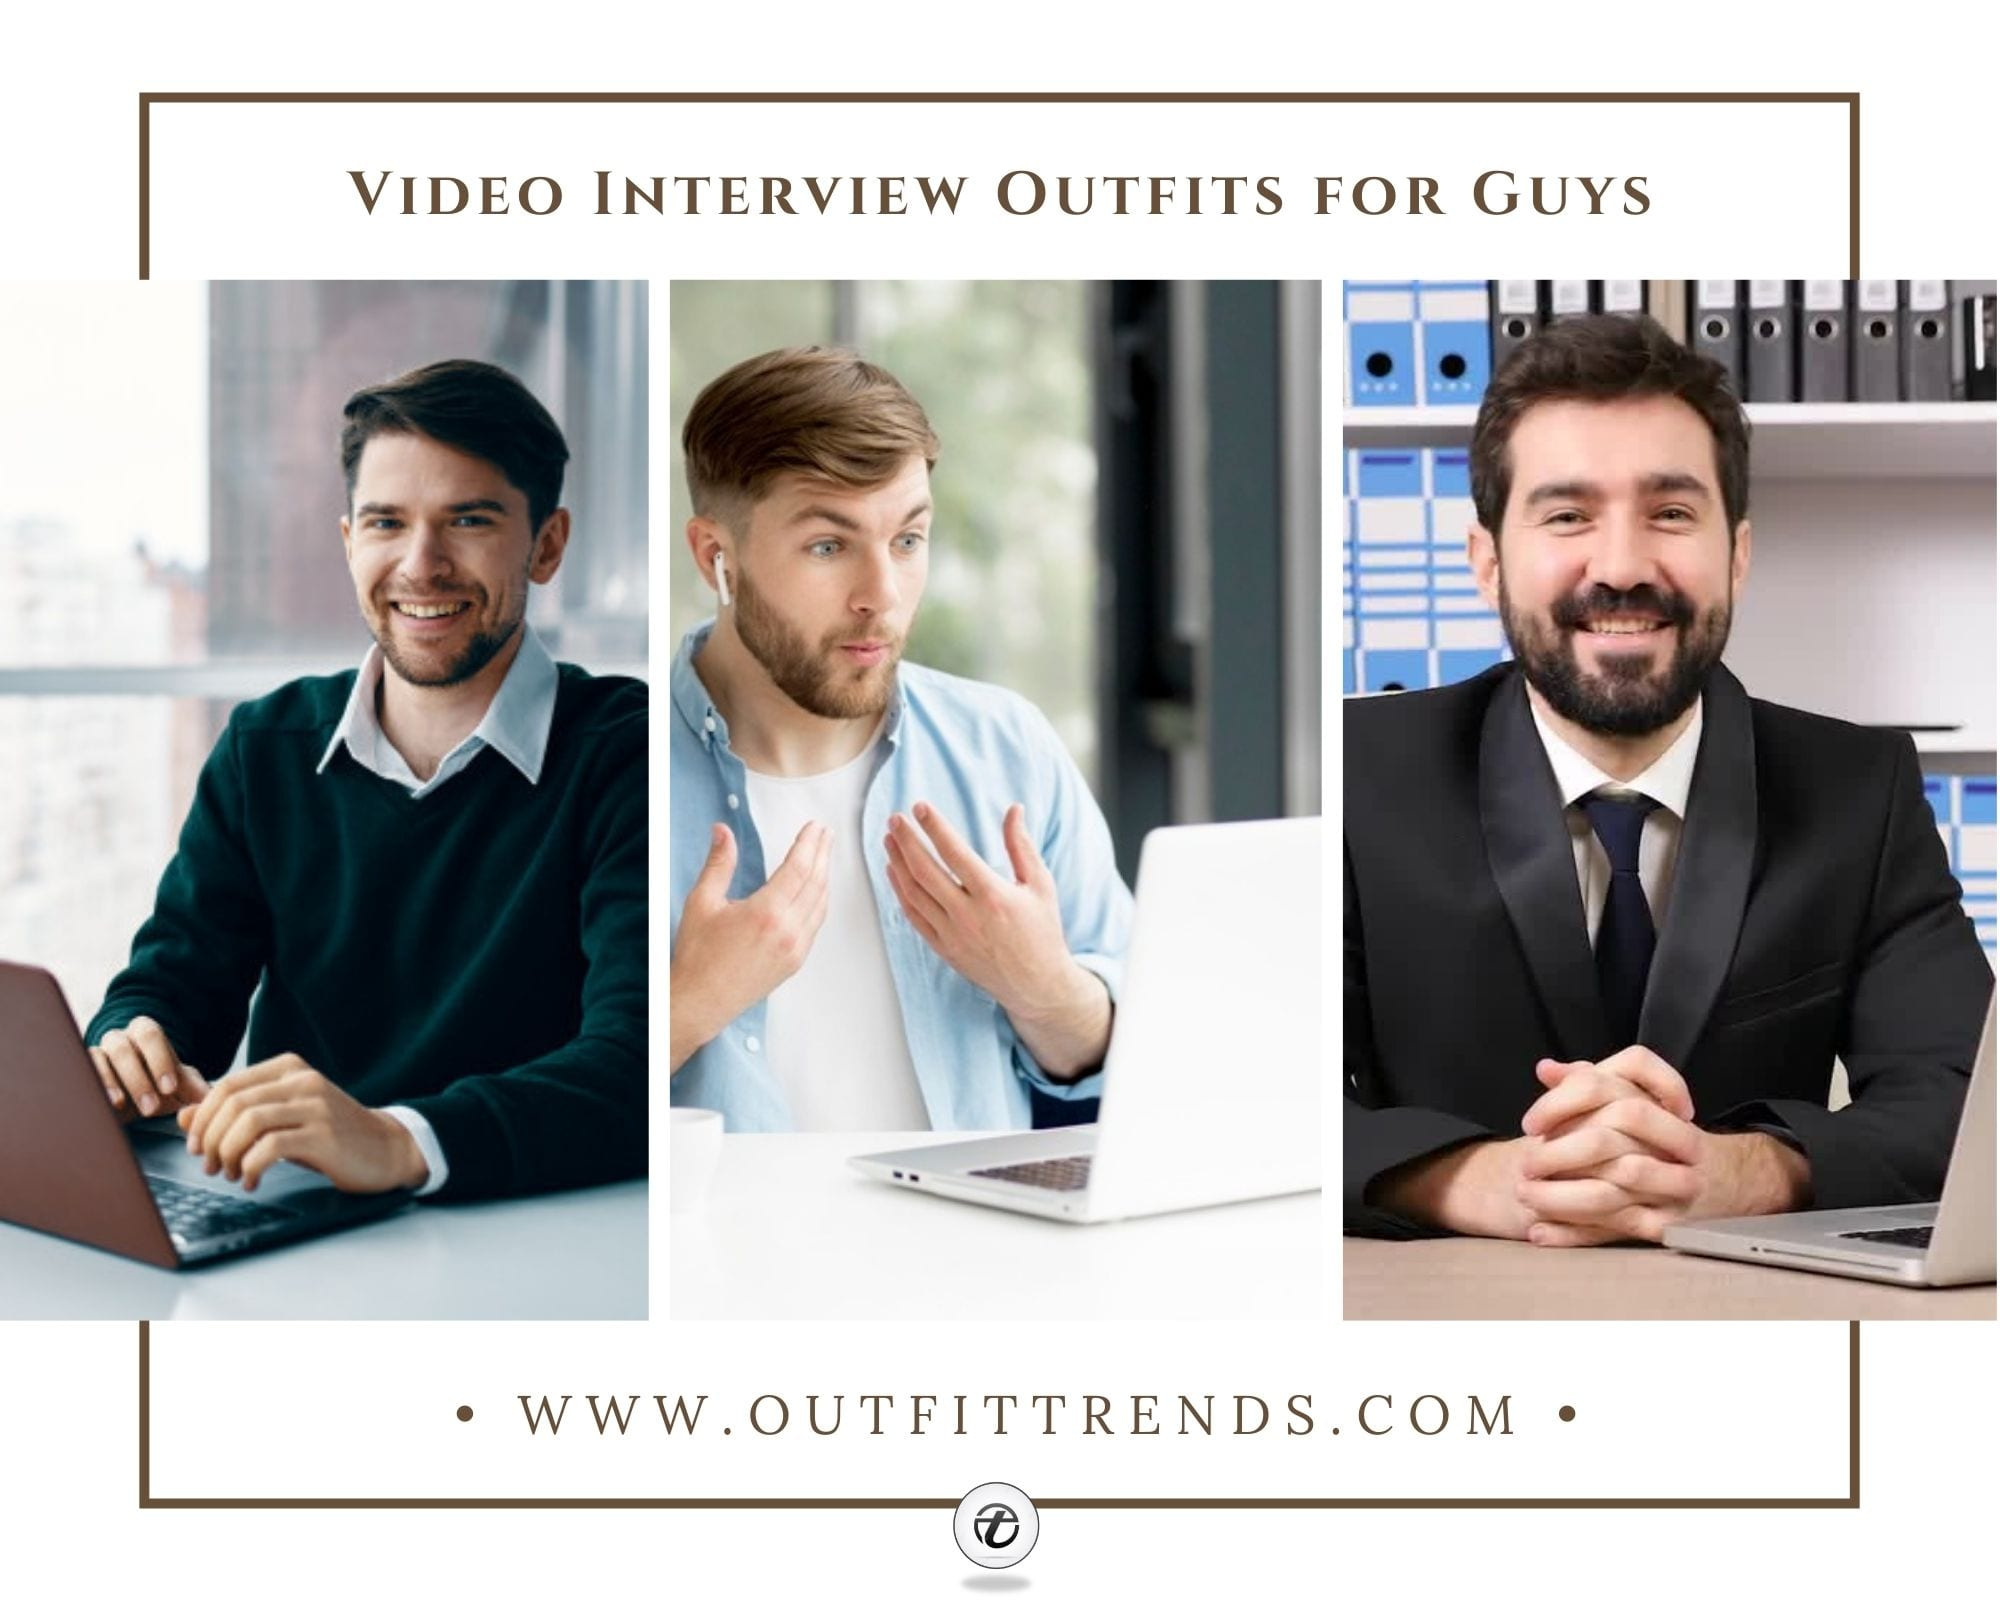 15 Best Video Interview Outfits for Men – The Dos and Dont's